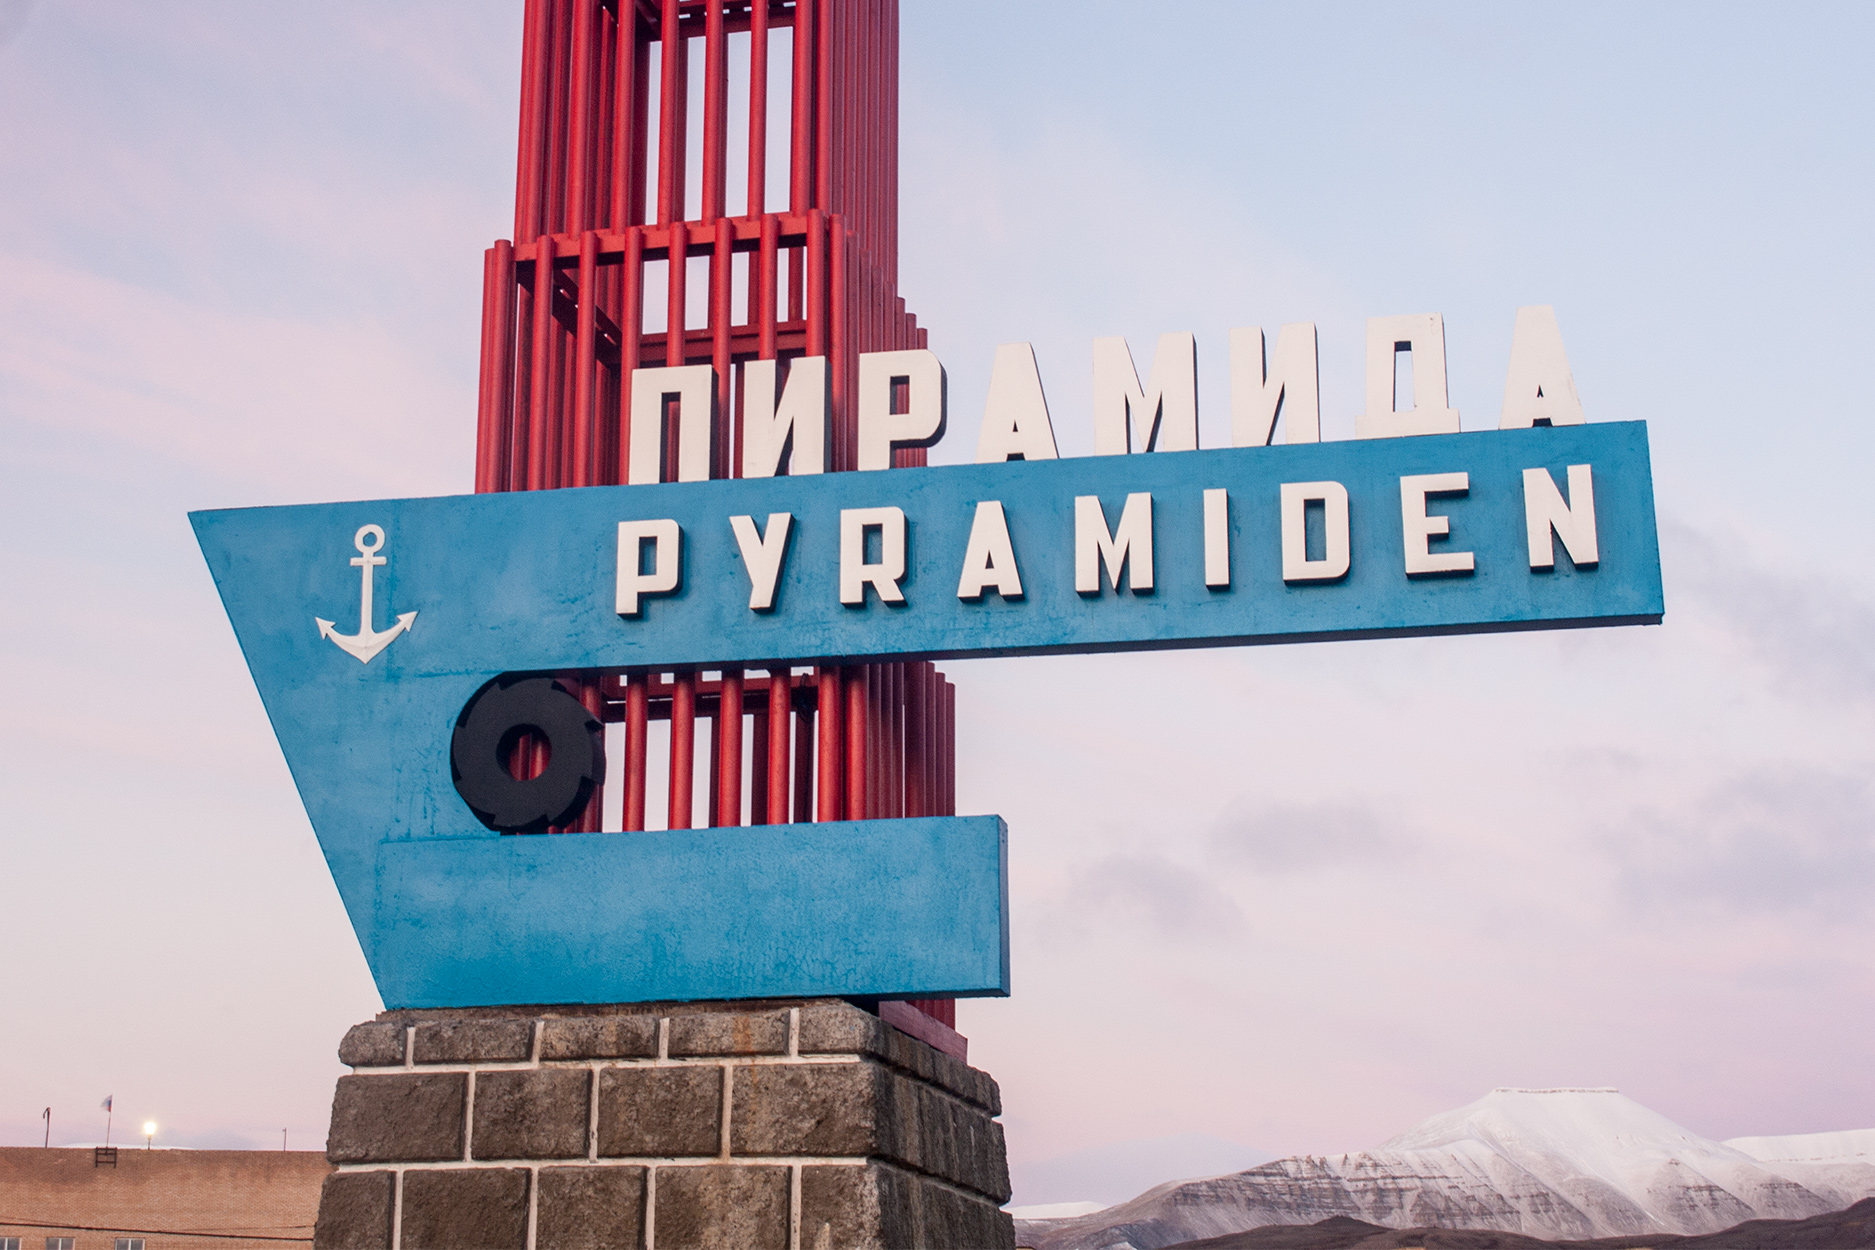 Sign for Pyramiden, Svalbard